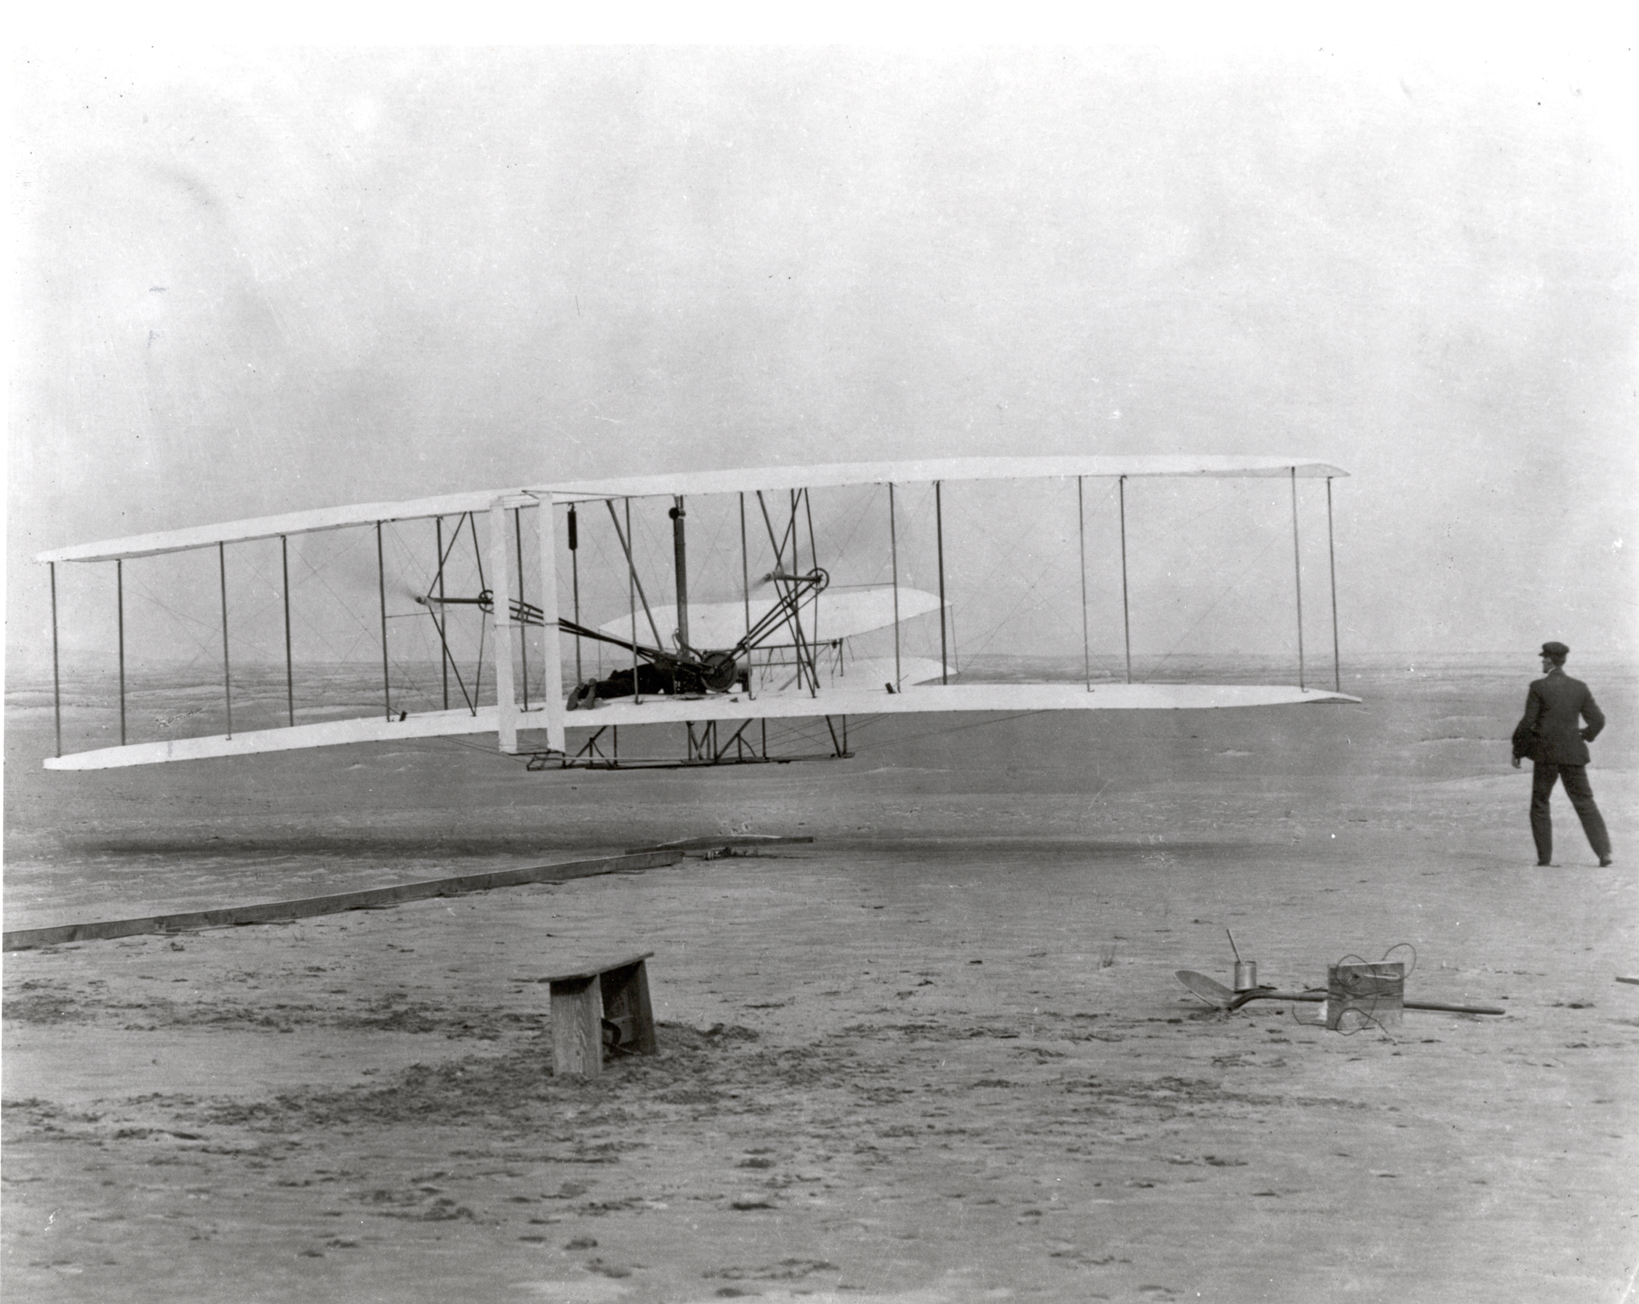 Guy wright brothers the fist plane